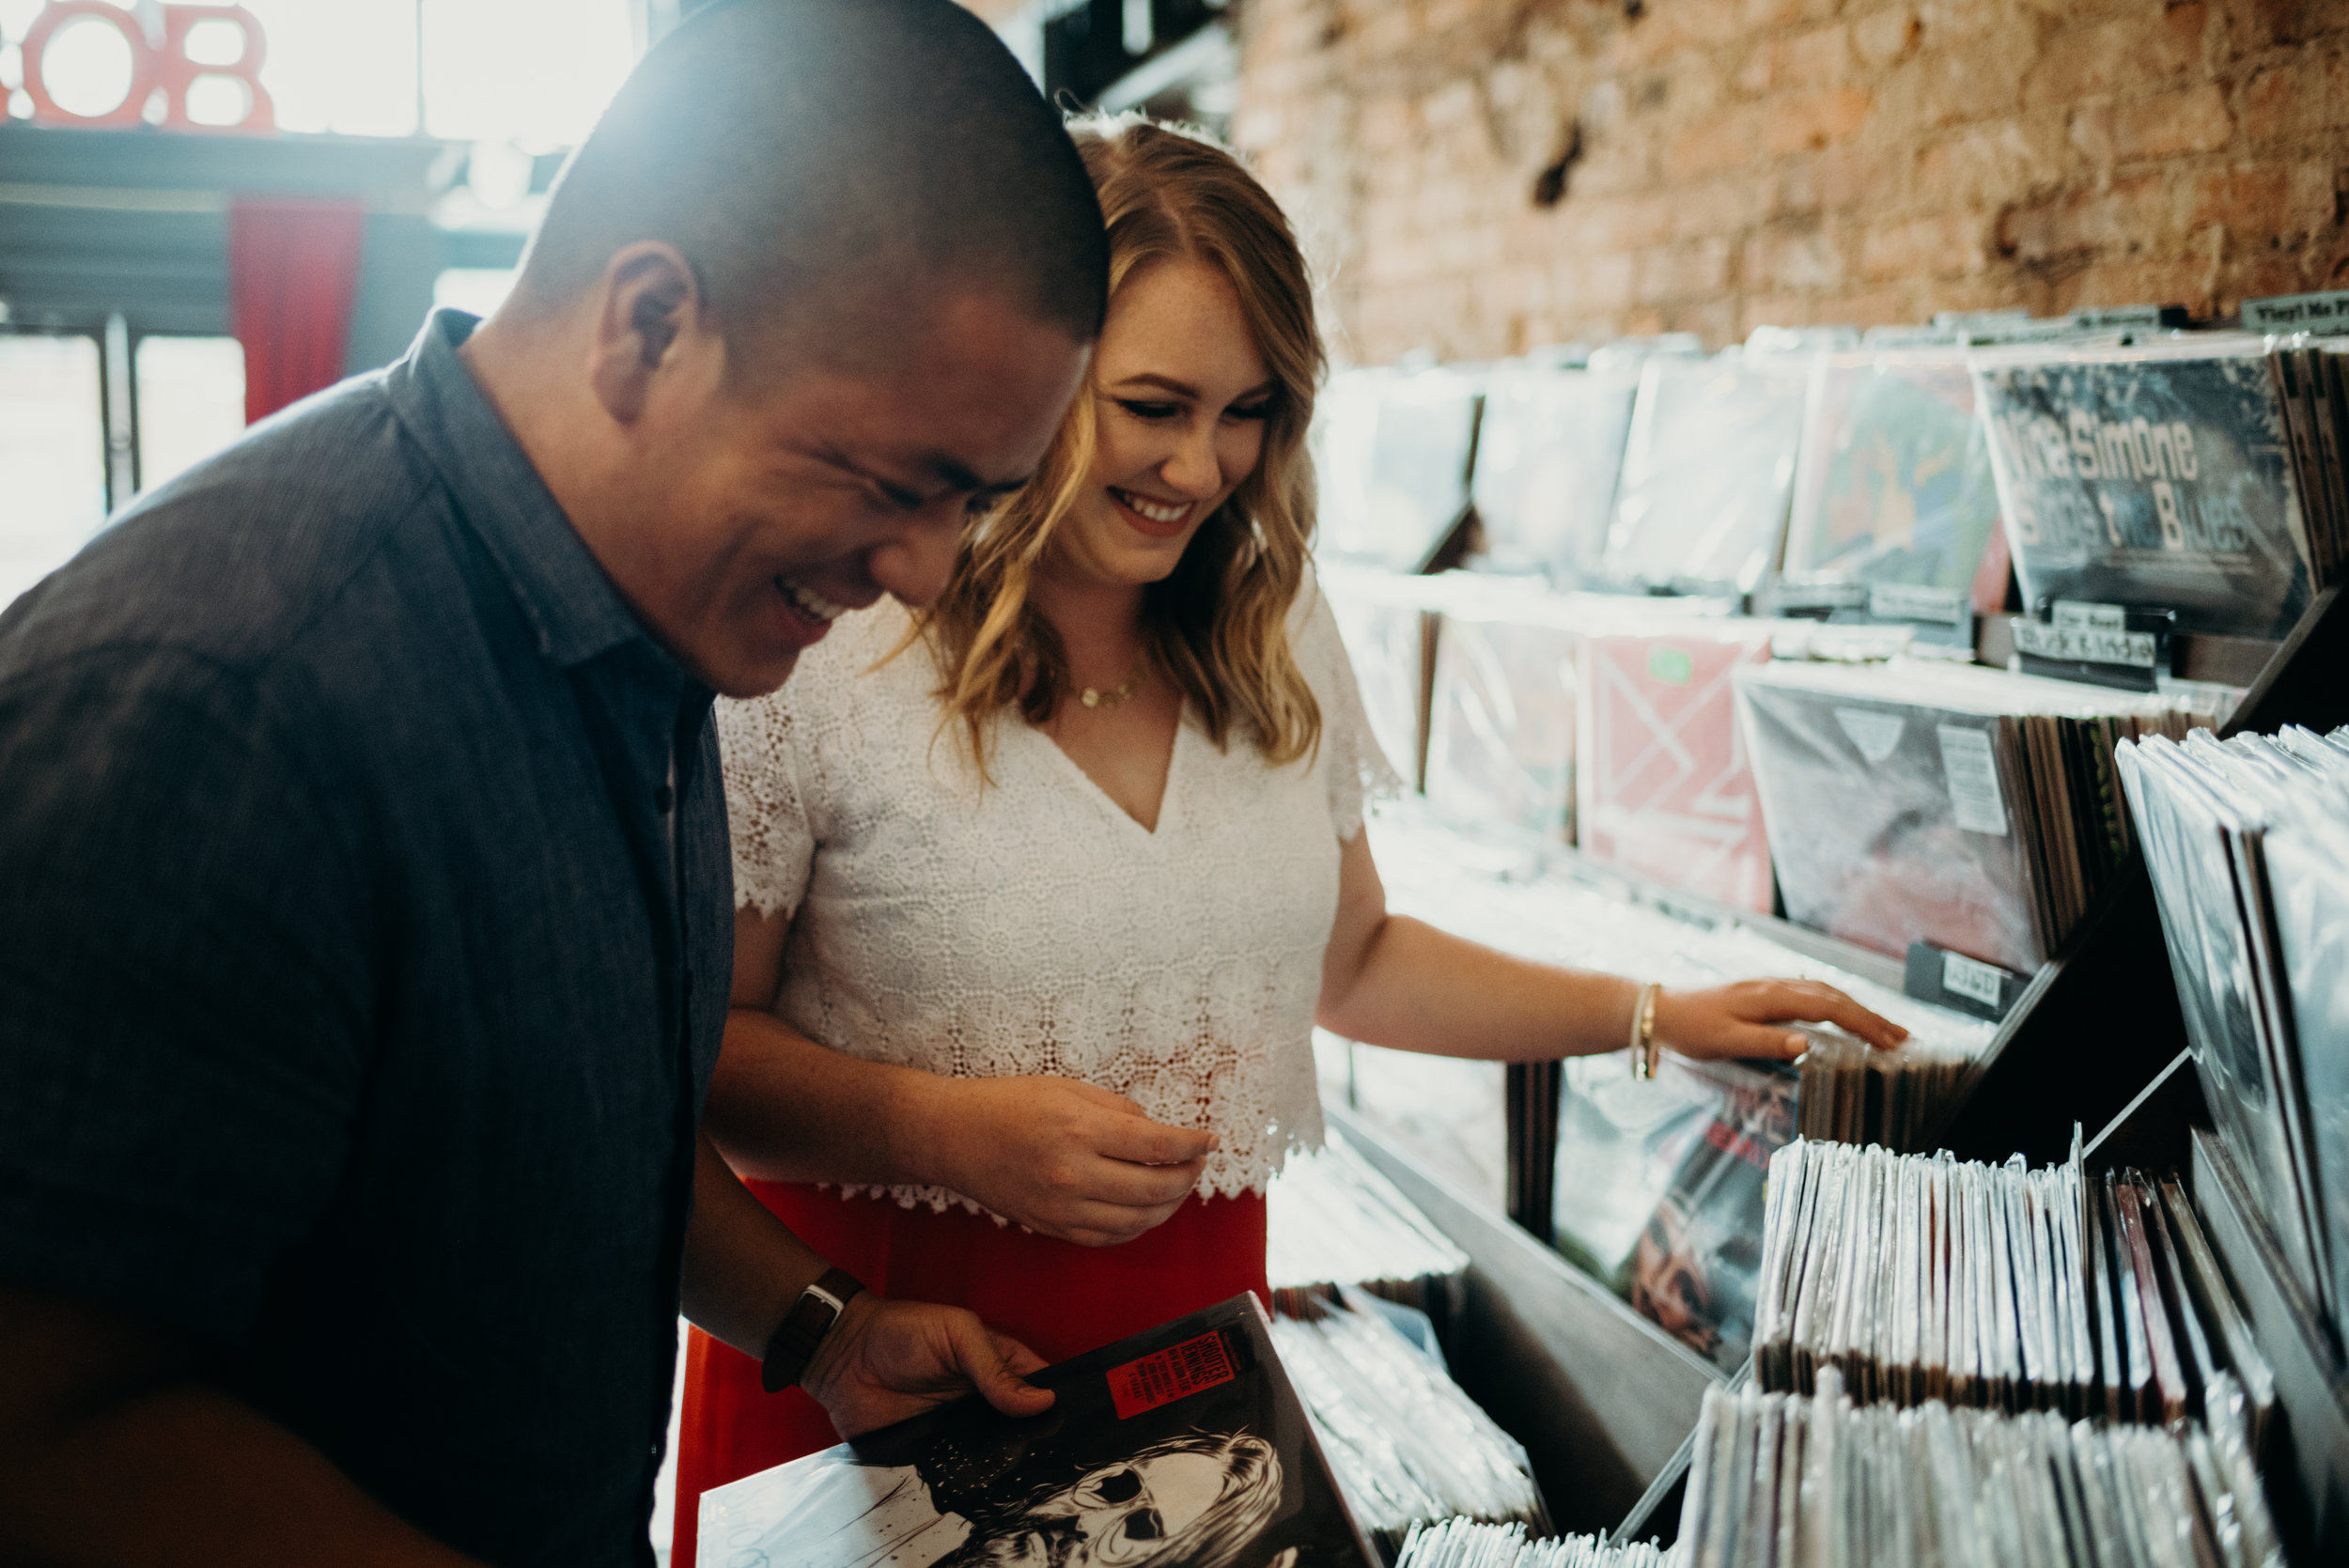 engagement photo session shopping for records at Songbyrd in Washington, D.C.